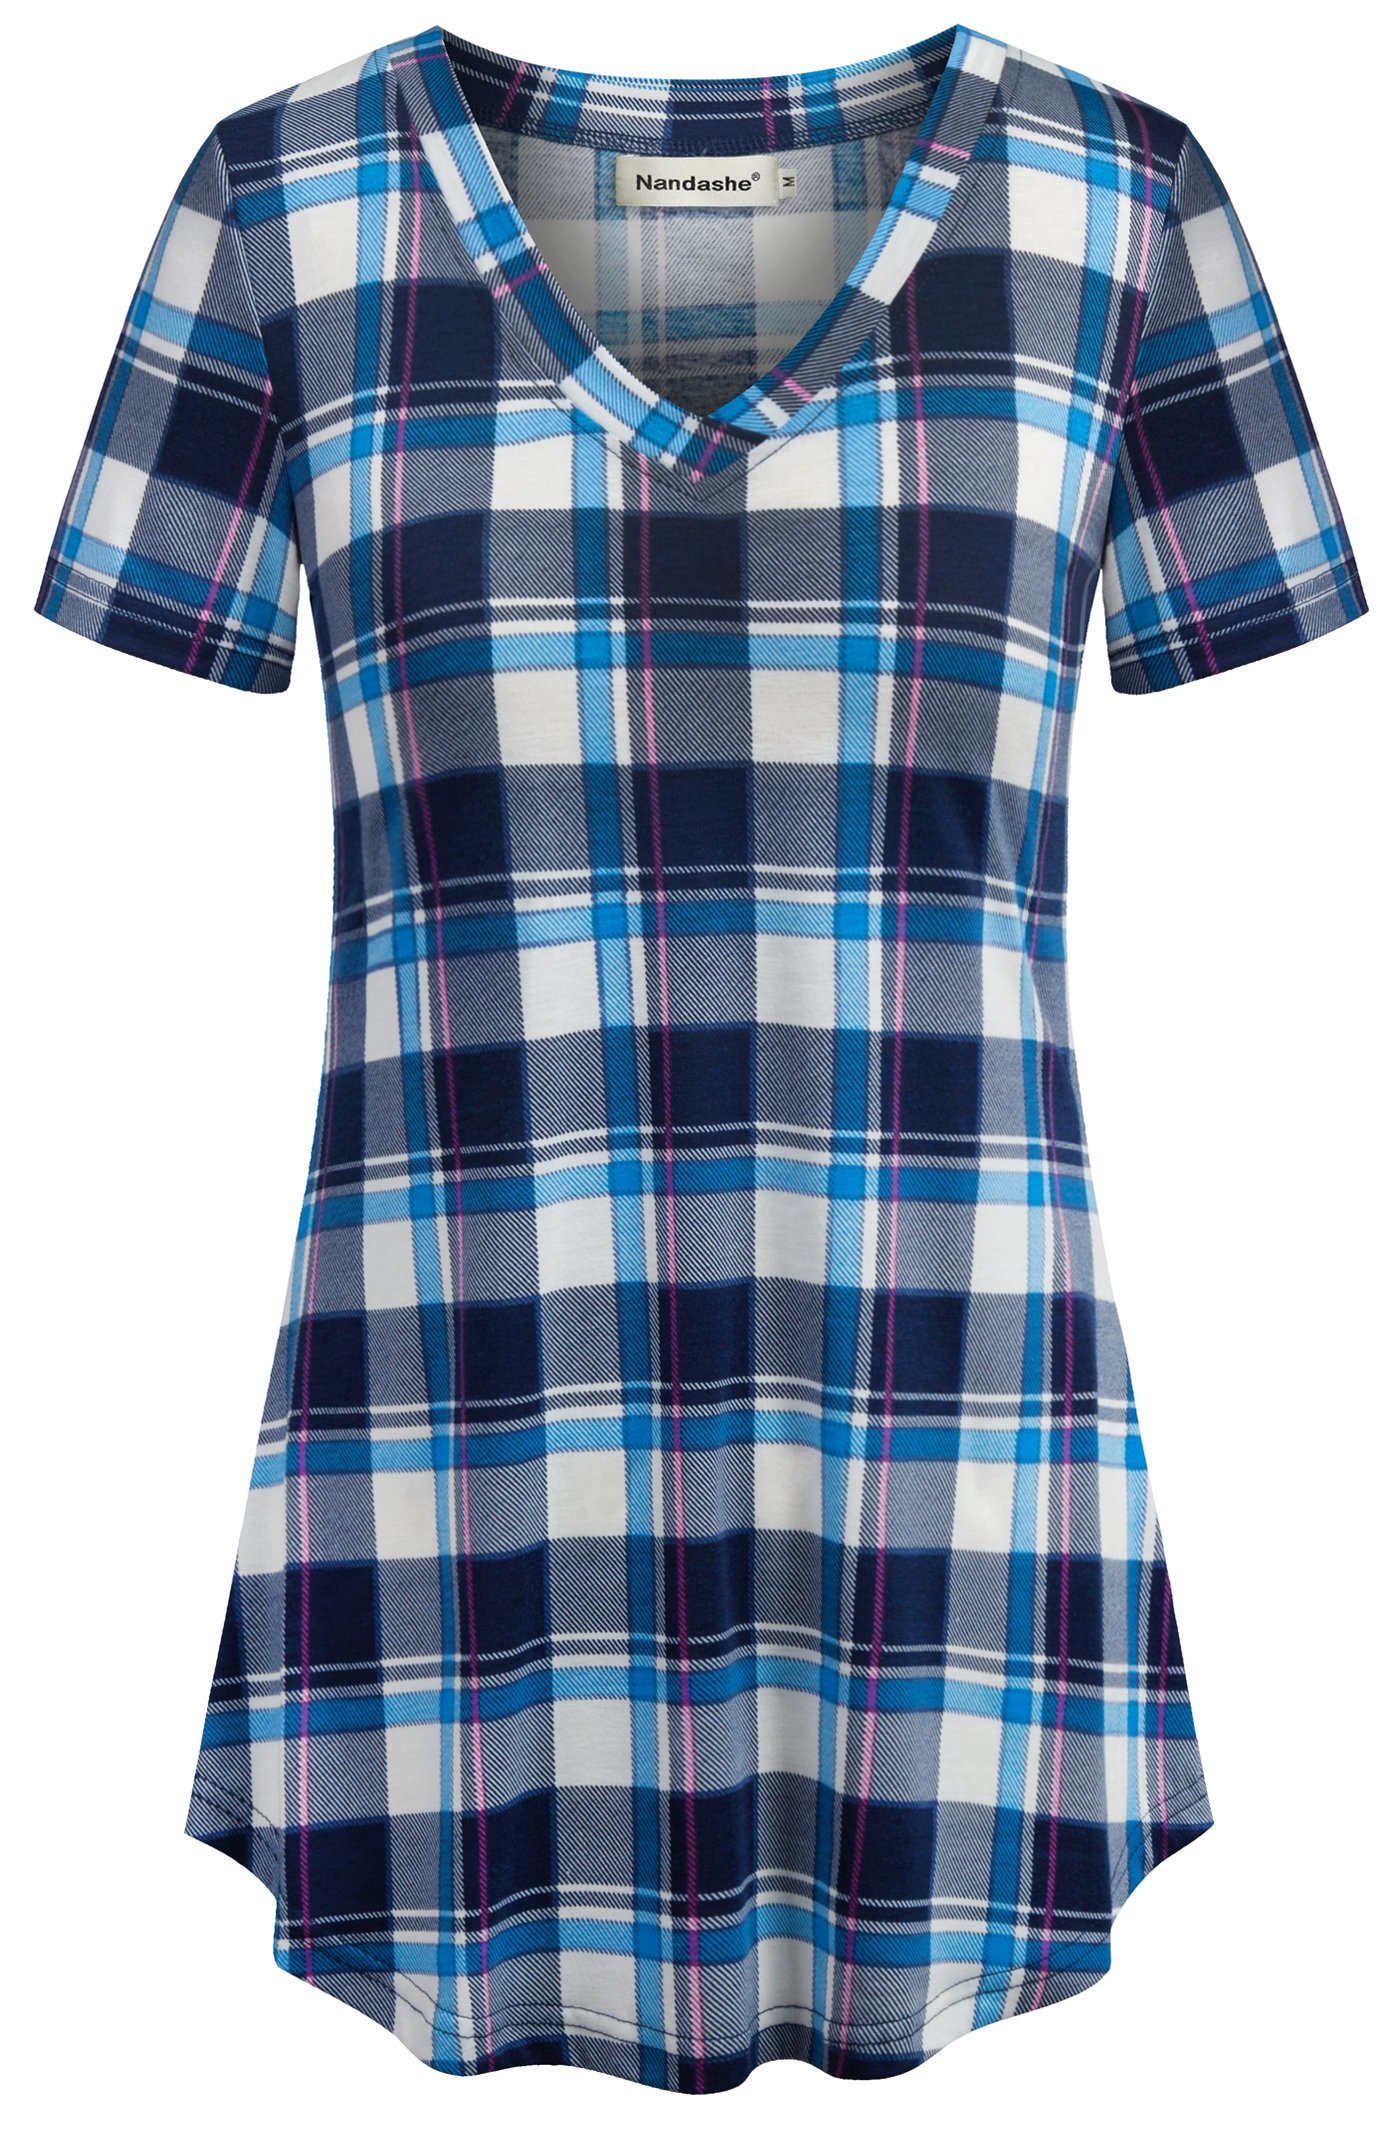 Nandashe T Shirts for Women, Old Lady Deep V Neck Comfy Fashionable Plain Simple Stretch Loose Slouchy Soft Basic Curved Hem Smooth Chic Style Gingham Tee Shirts Medium Light Blue Size 8